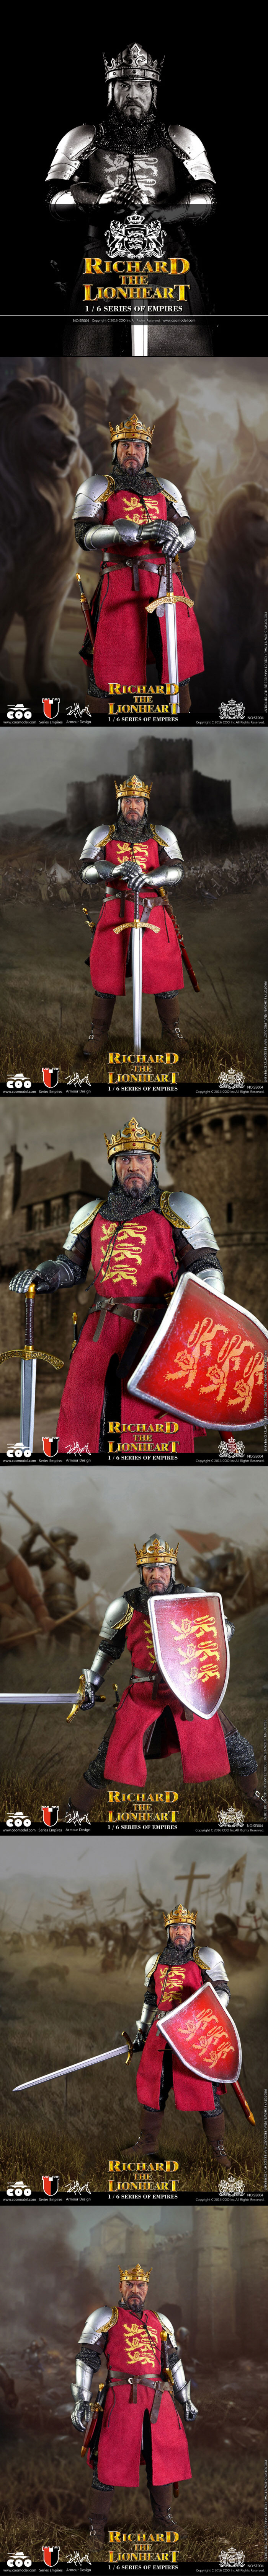 [[예약상품]COOMODEL - 1/6 Empires Series: Richard the Lionheart (SE004)]